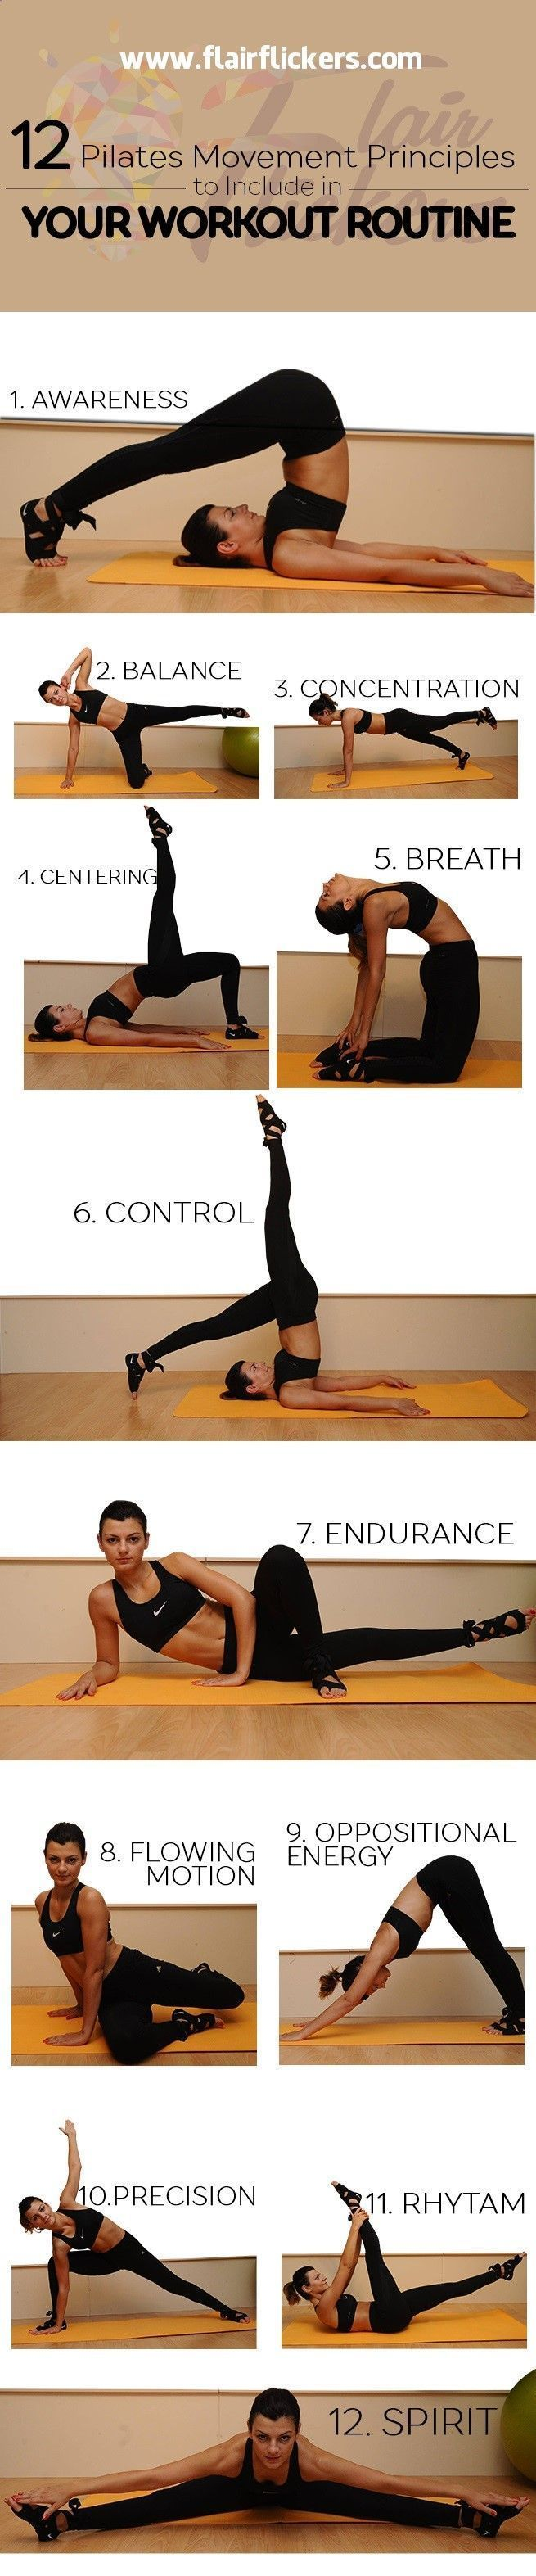 12 Pilates Movement Principles To Include in Your Workout Routine Posted By NewHowToLoseBellyFat